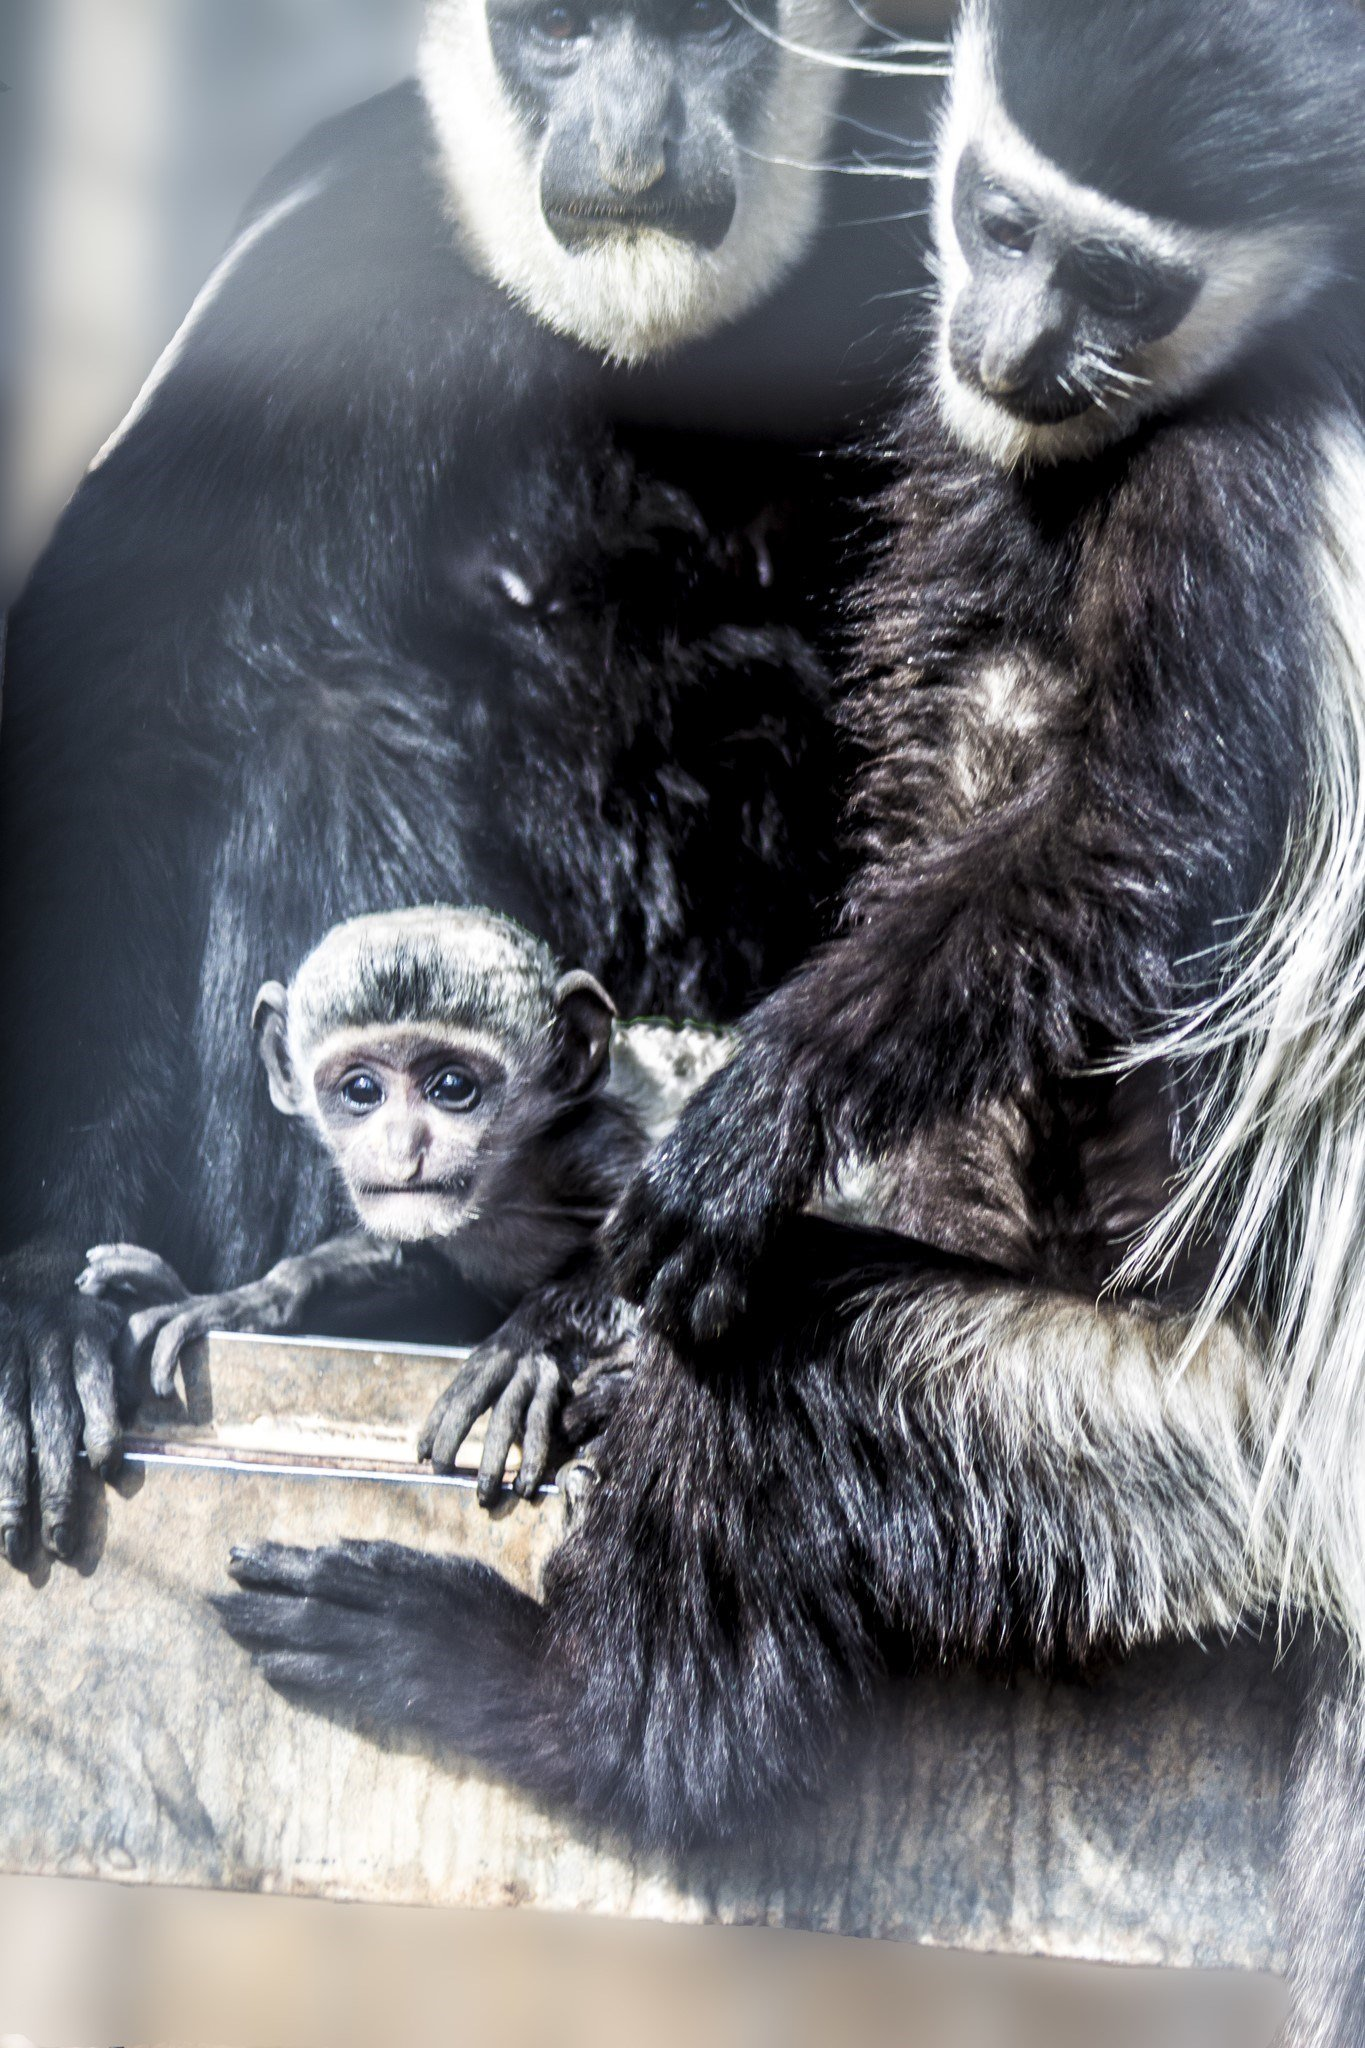 The Colobus monkey born at the Wildlife World Zoo. (Source: Wildlife World Zoo